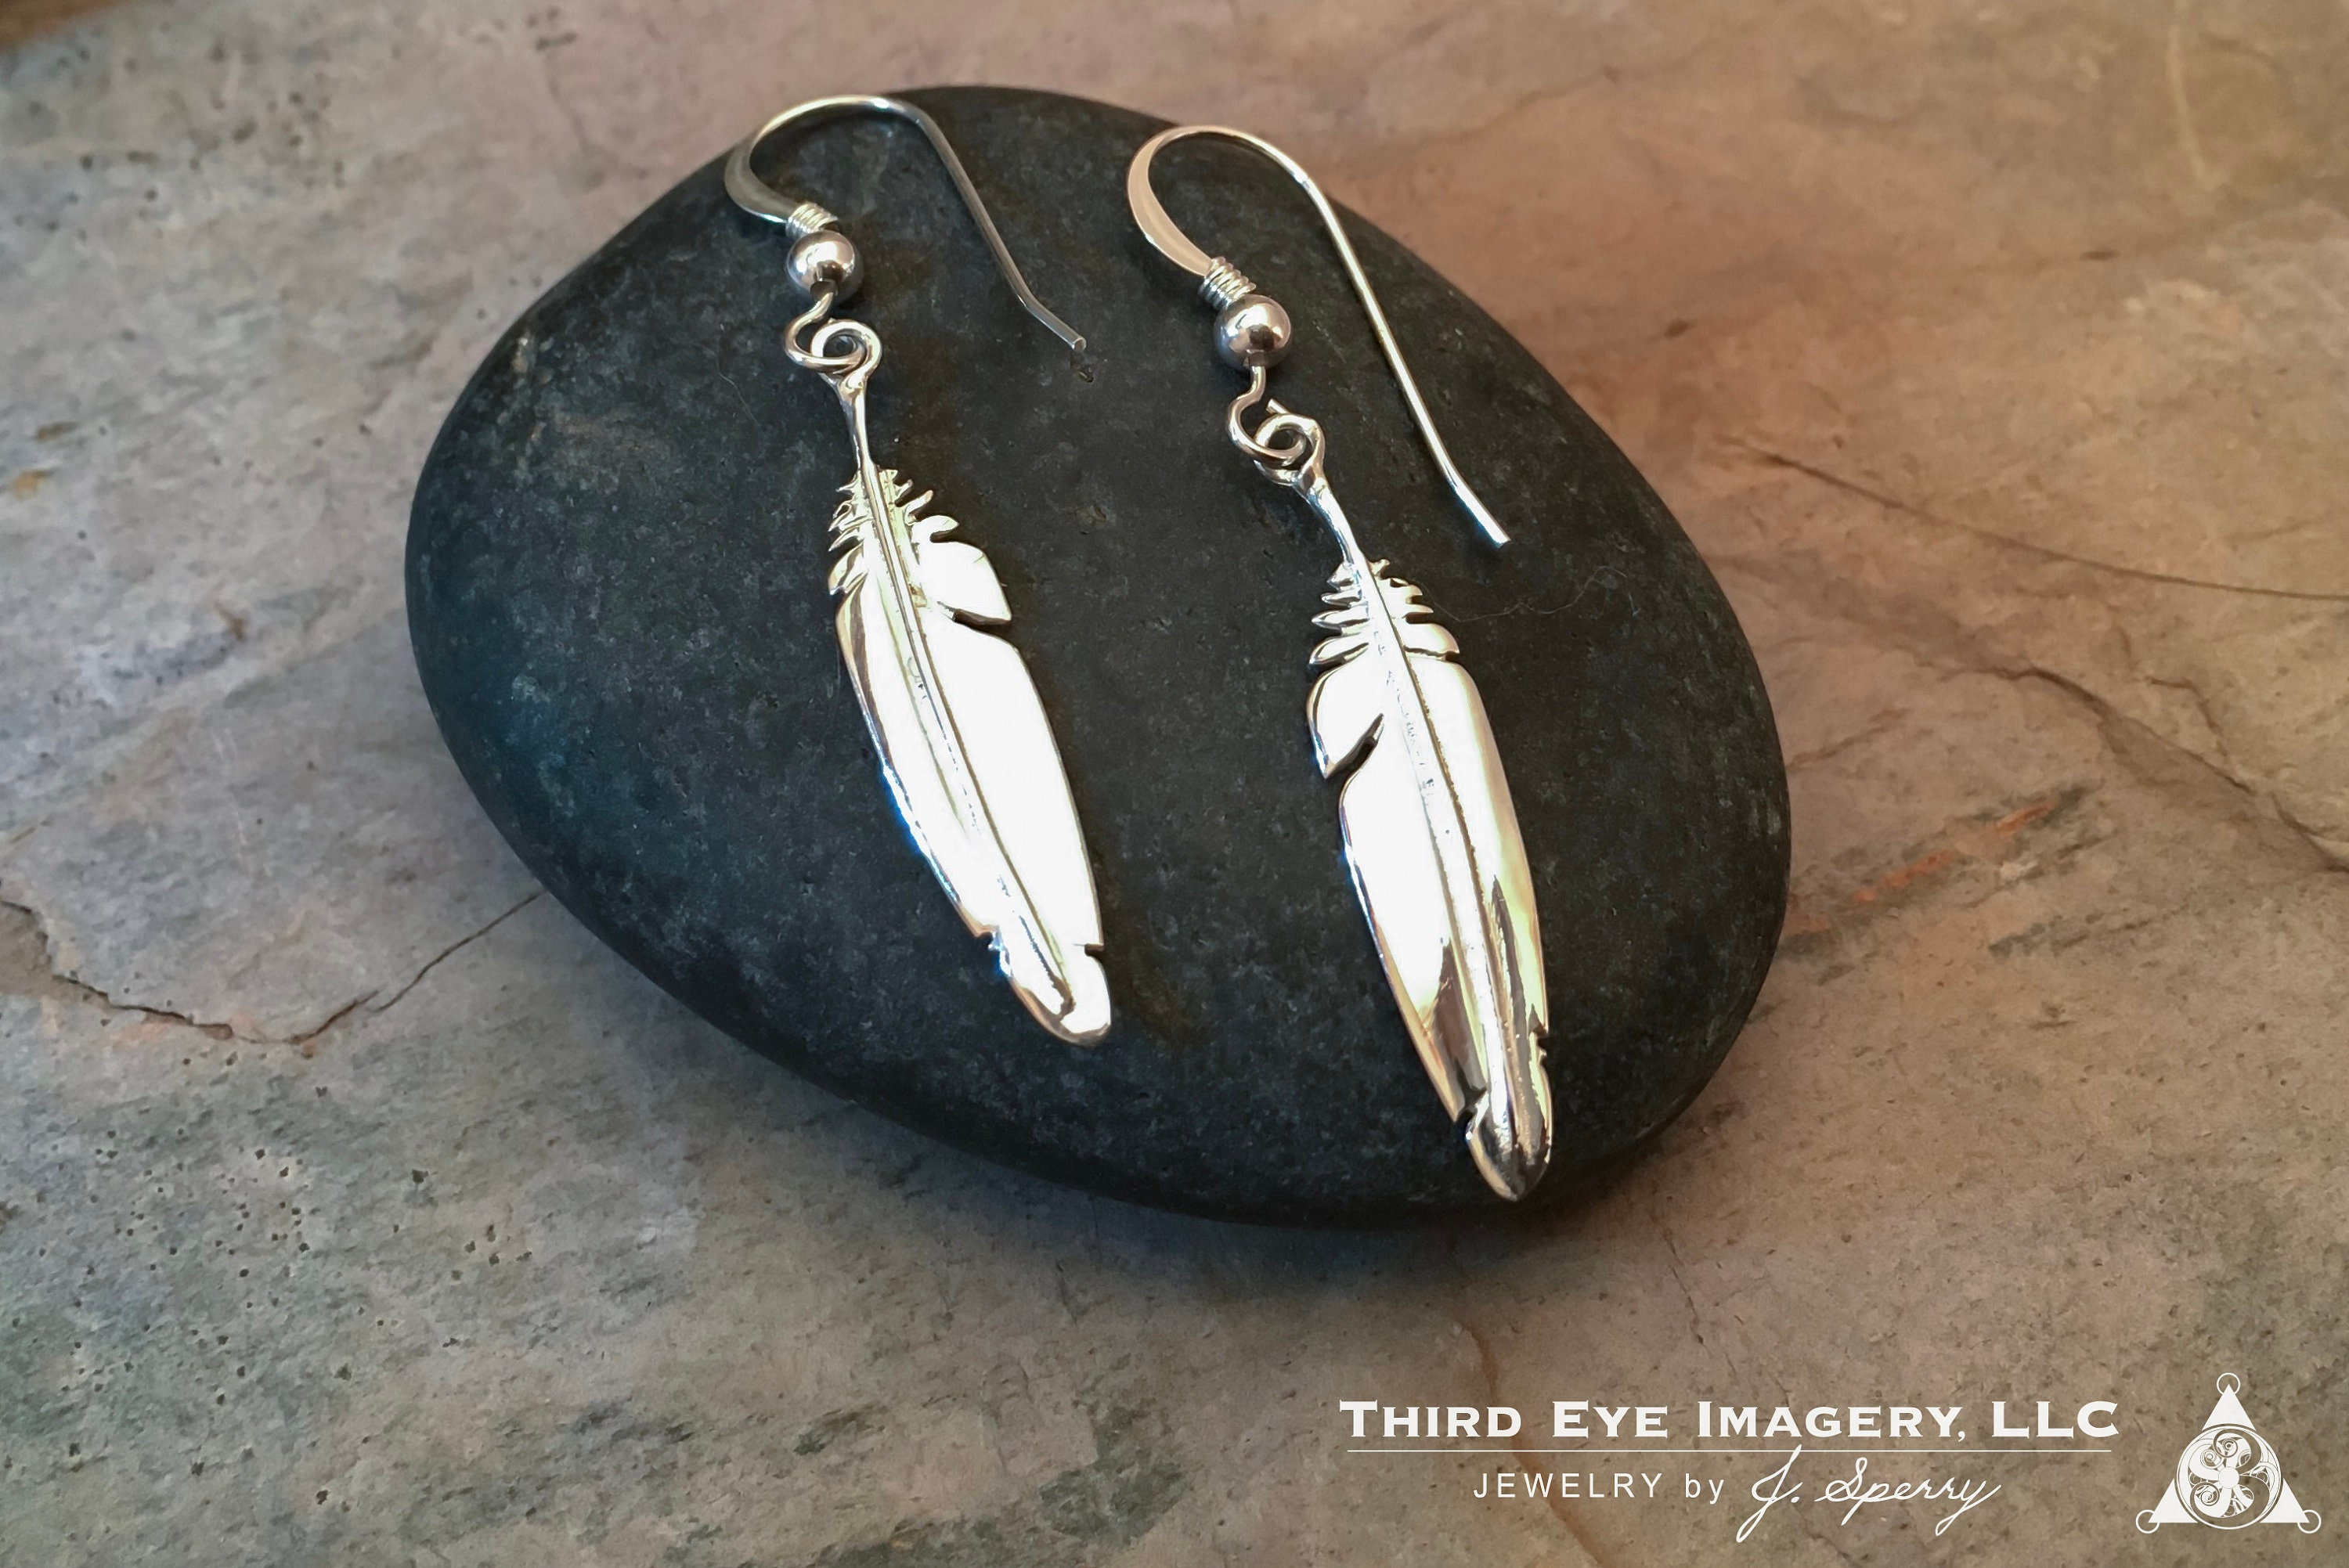 Feather Earrings in solid Sterling Silver - Wonderful for anniversary gift, gift for mom, birthday gift, wife gift or gift for girlfriend.